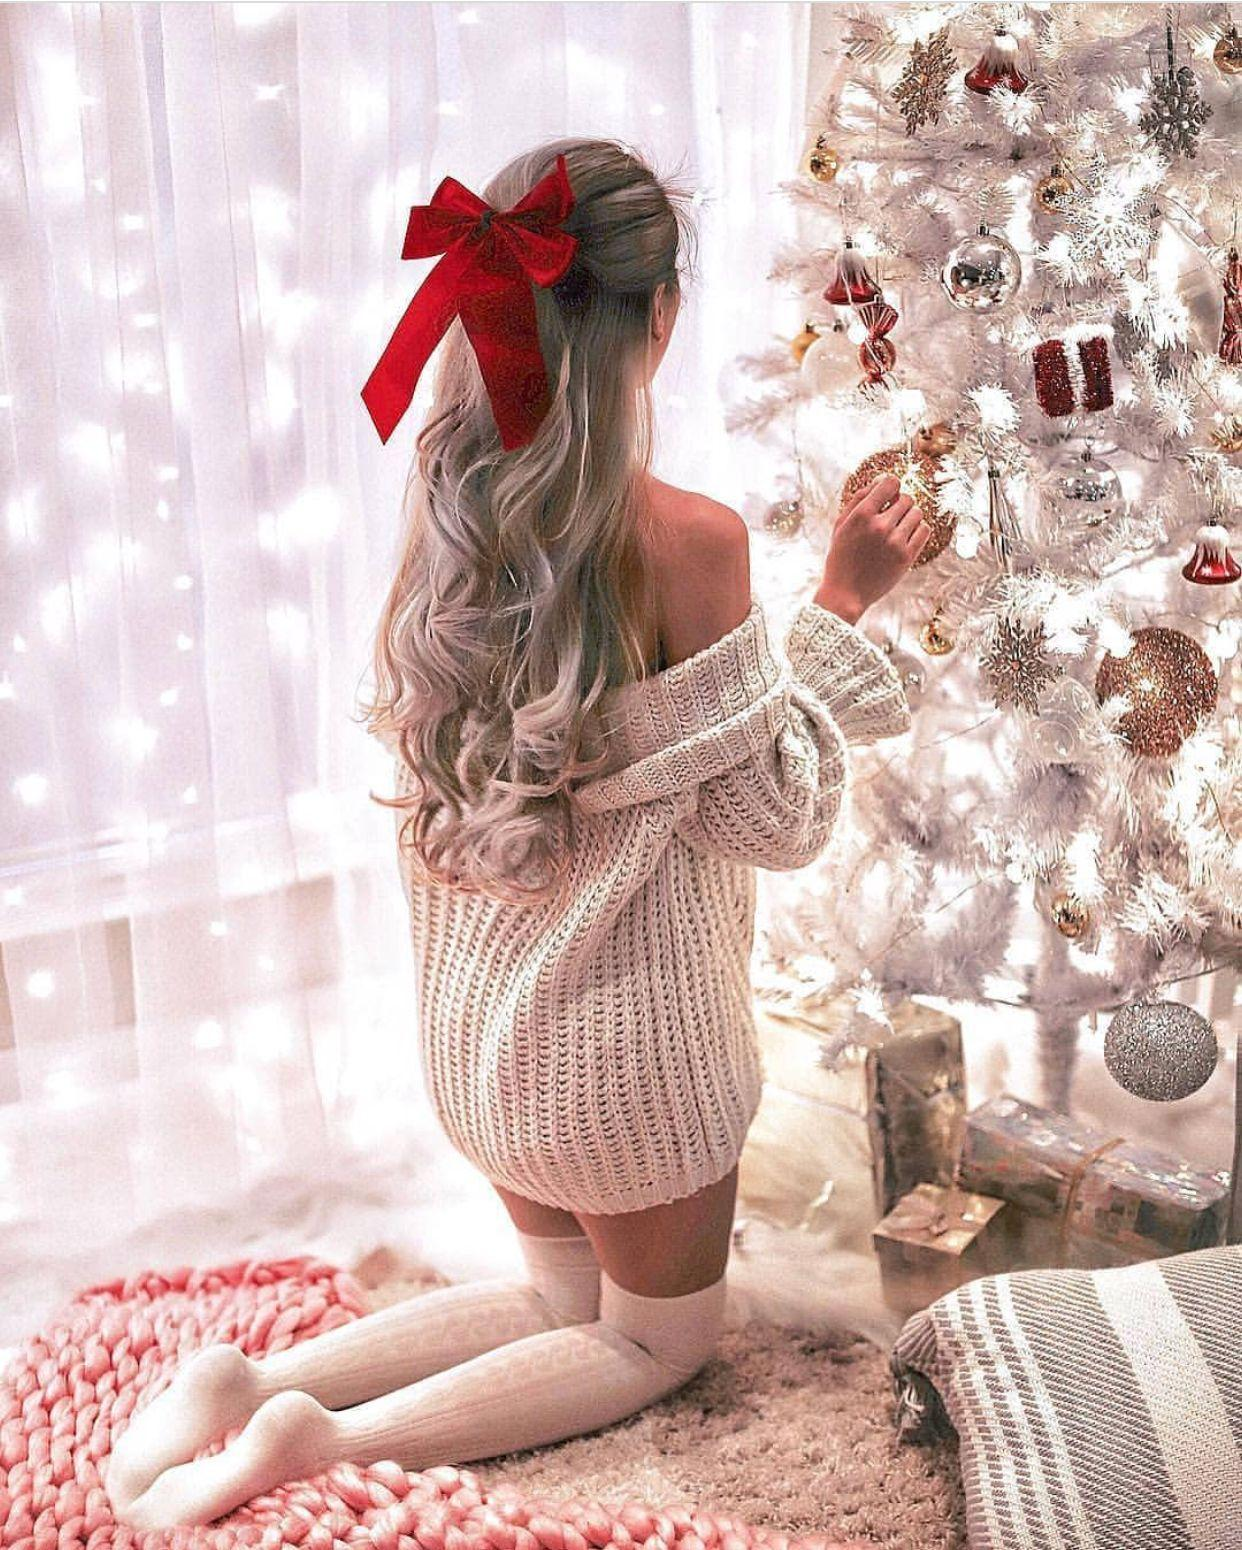 Girl wears sweater and stockings decorating Christmas tree